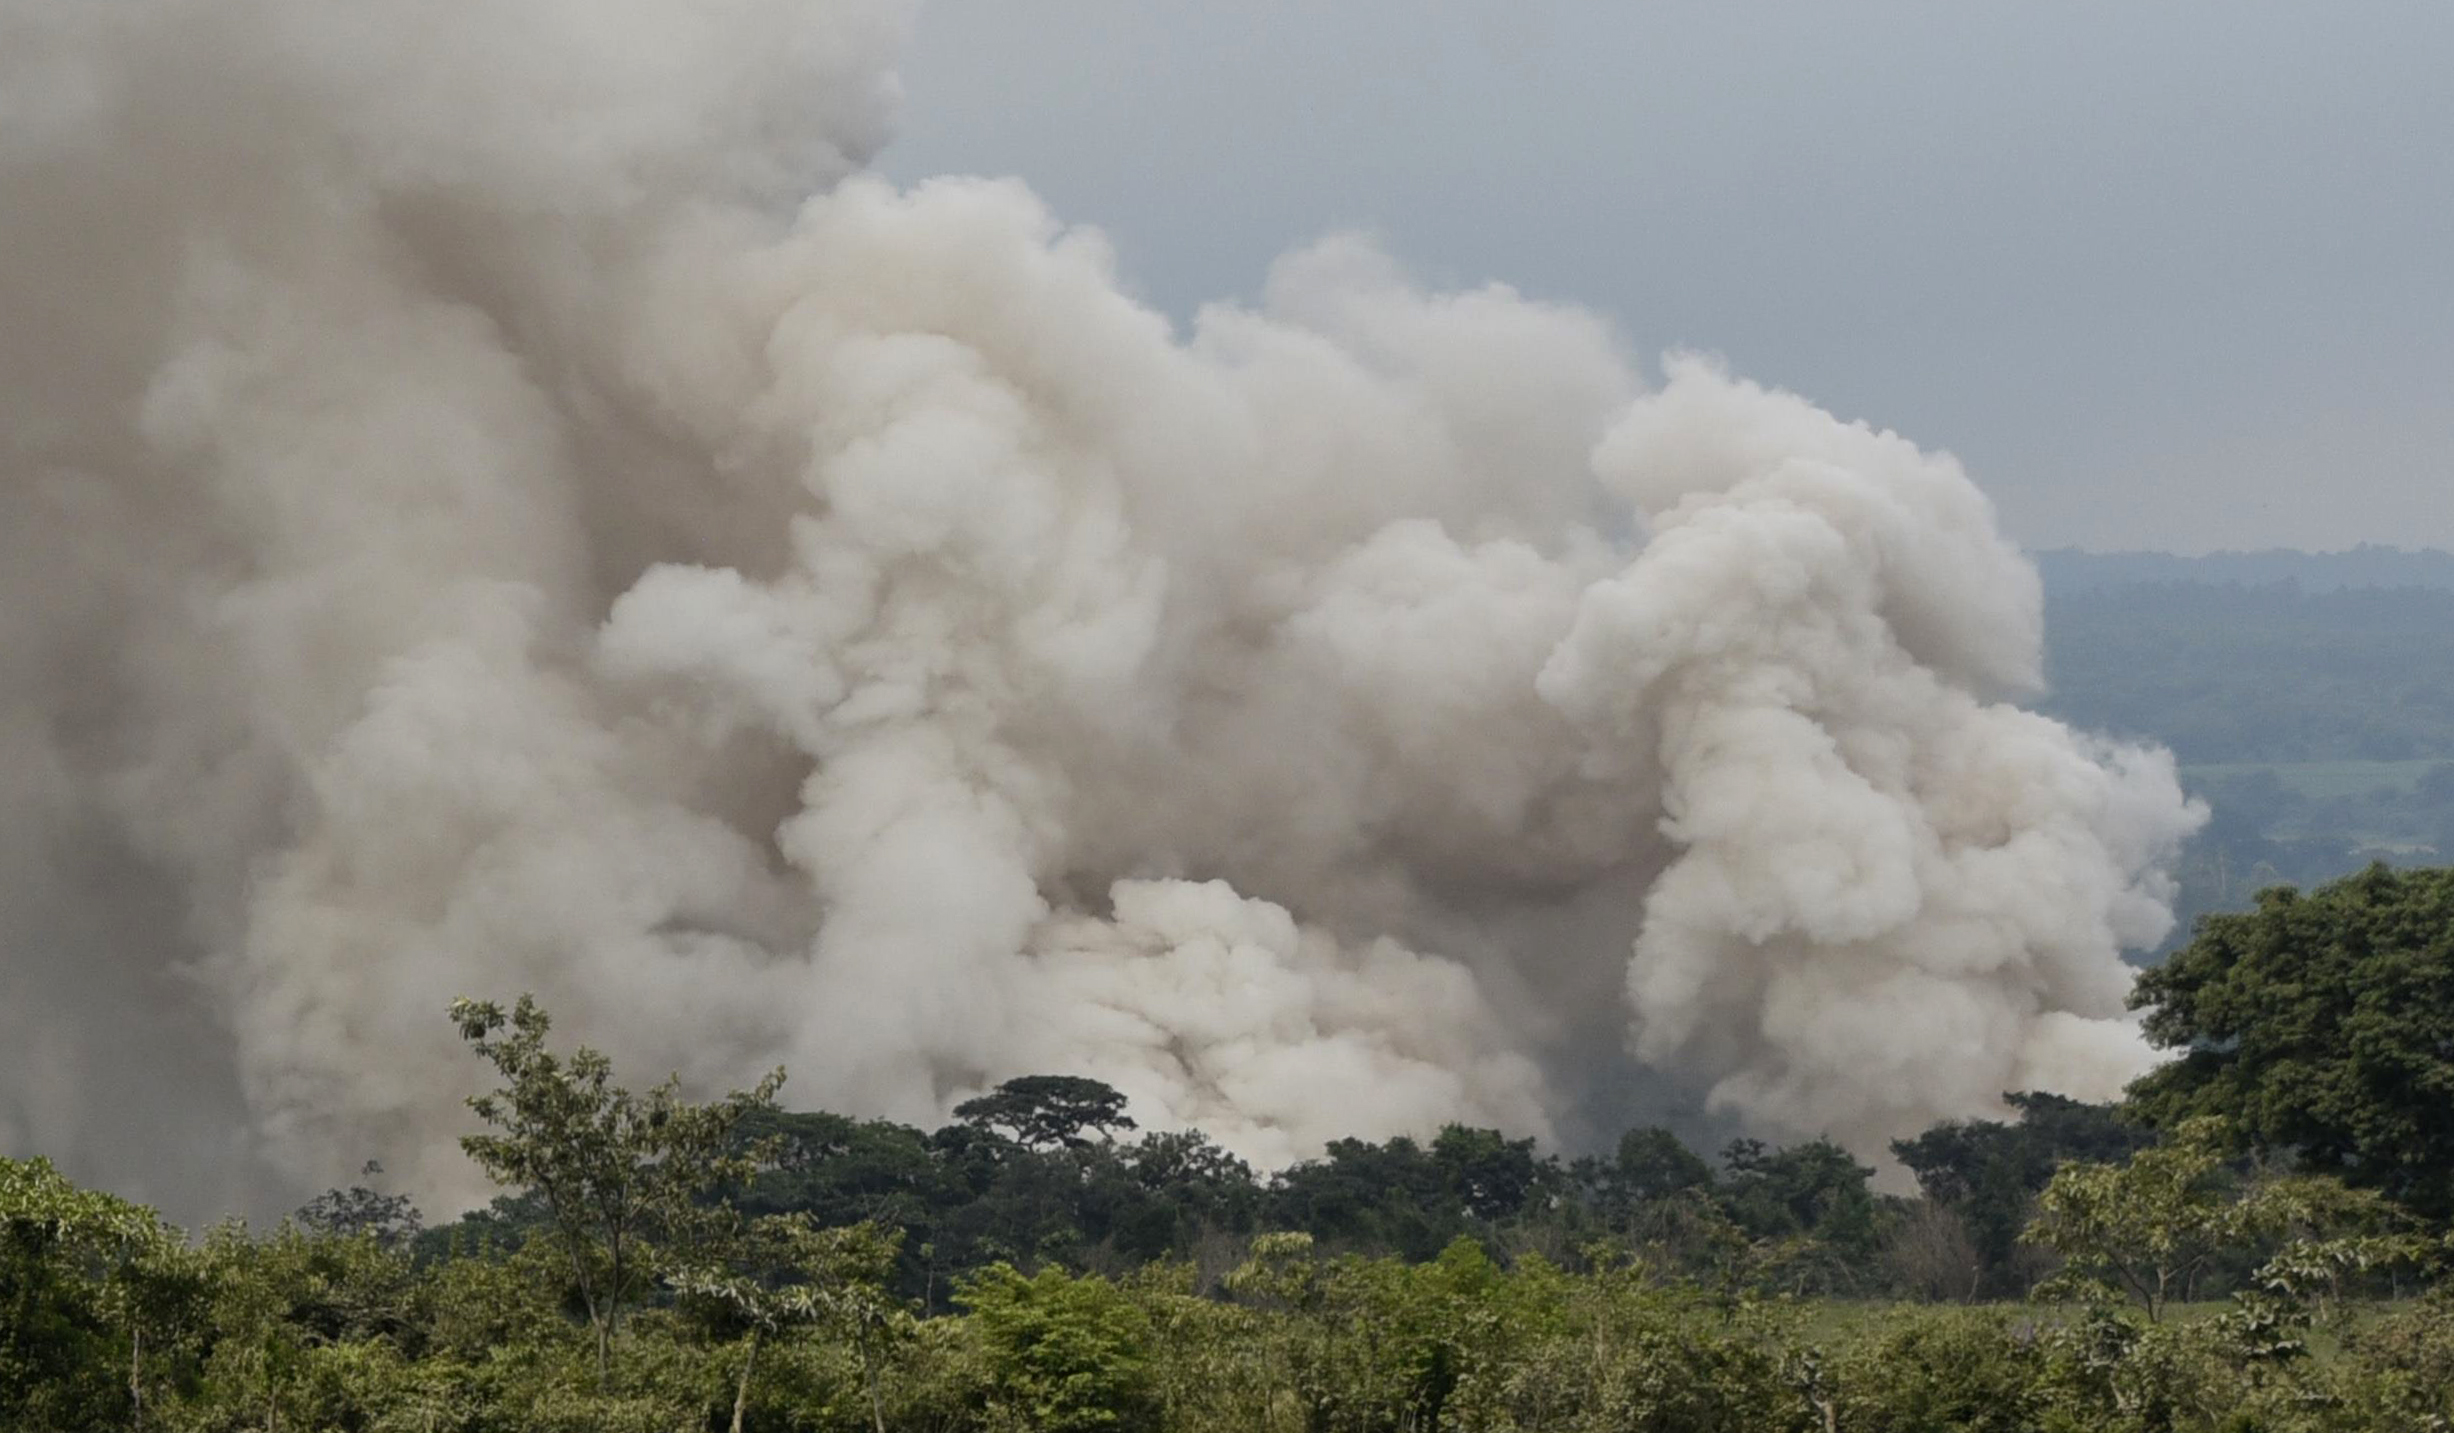 A new smoke column billows from the lower part of the Fuego Volcano forcing rescue operations to be suspended and the evacuation of everyone in the village of San Miguel Los Lotes, about 35 km southwest of Guatemala City, on June 5, 2018.